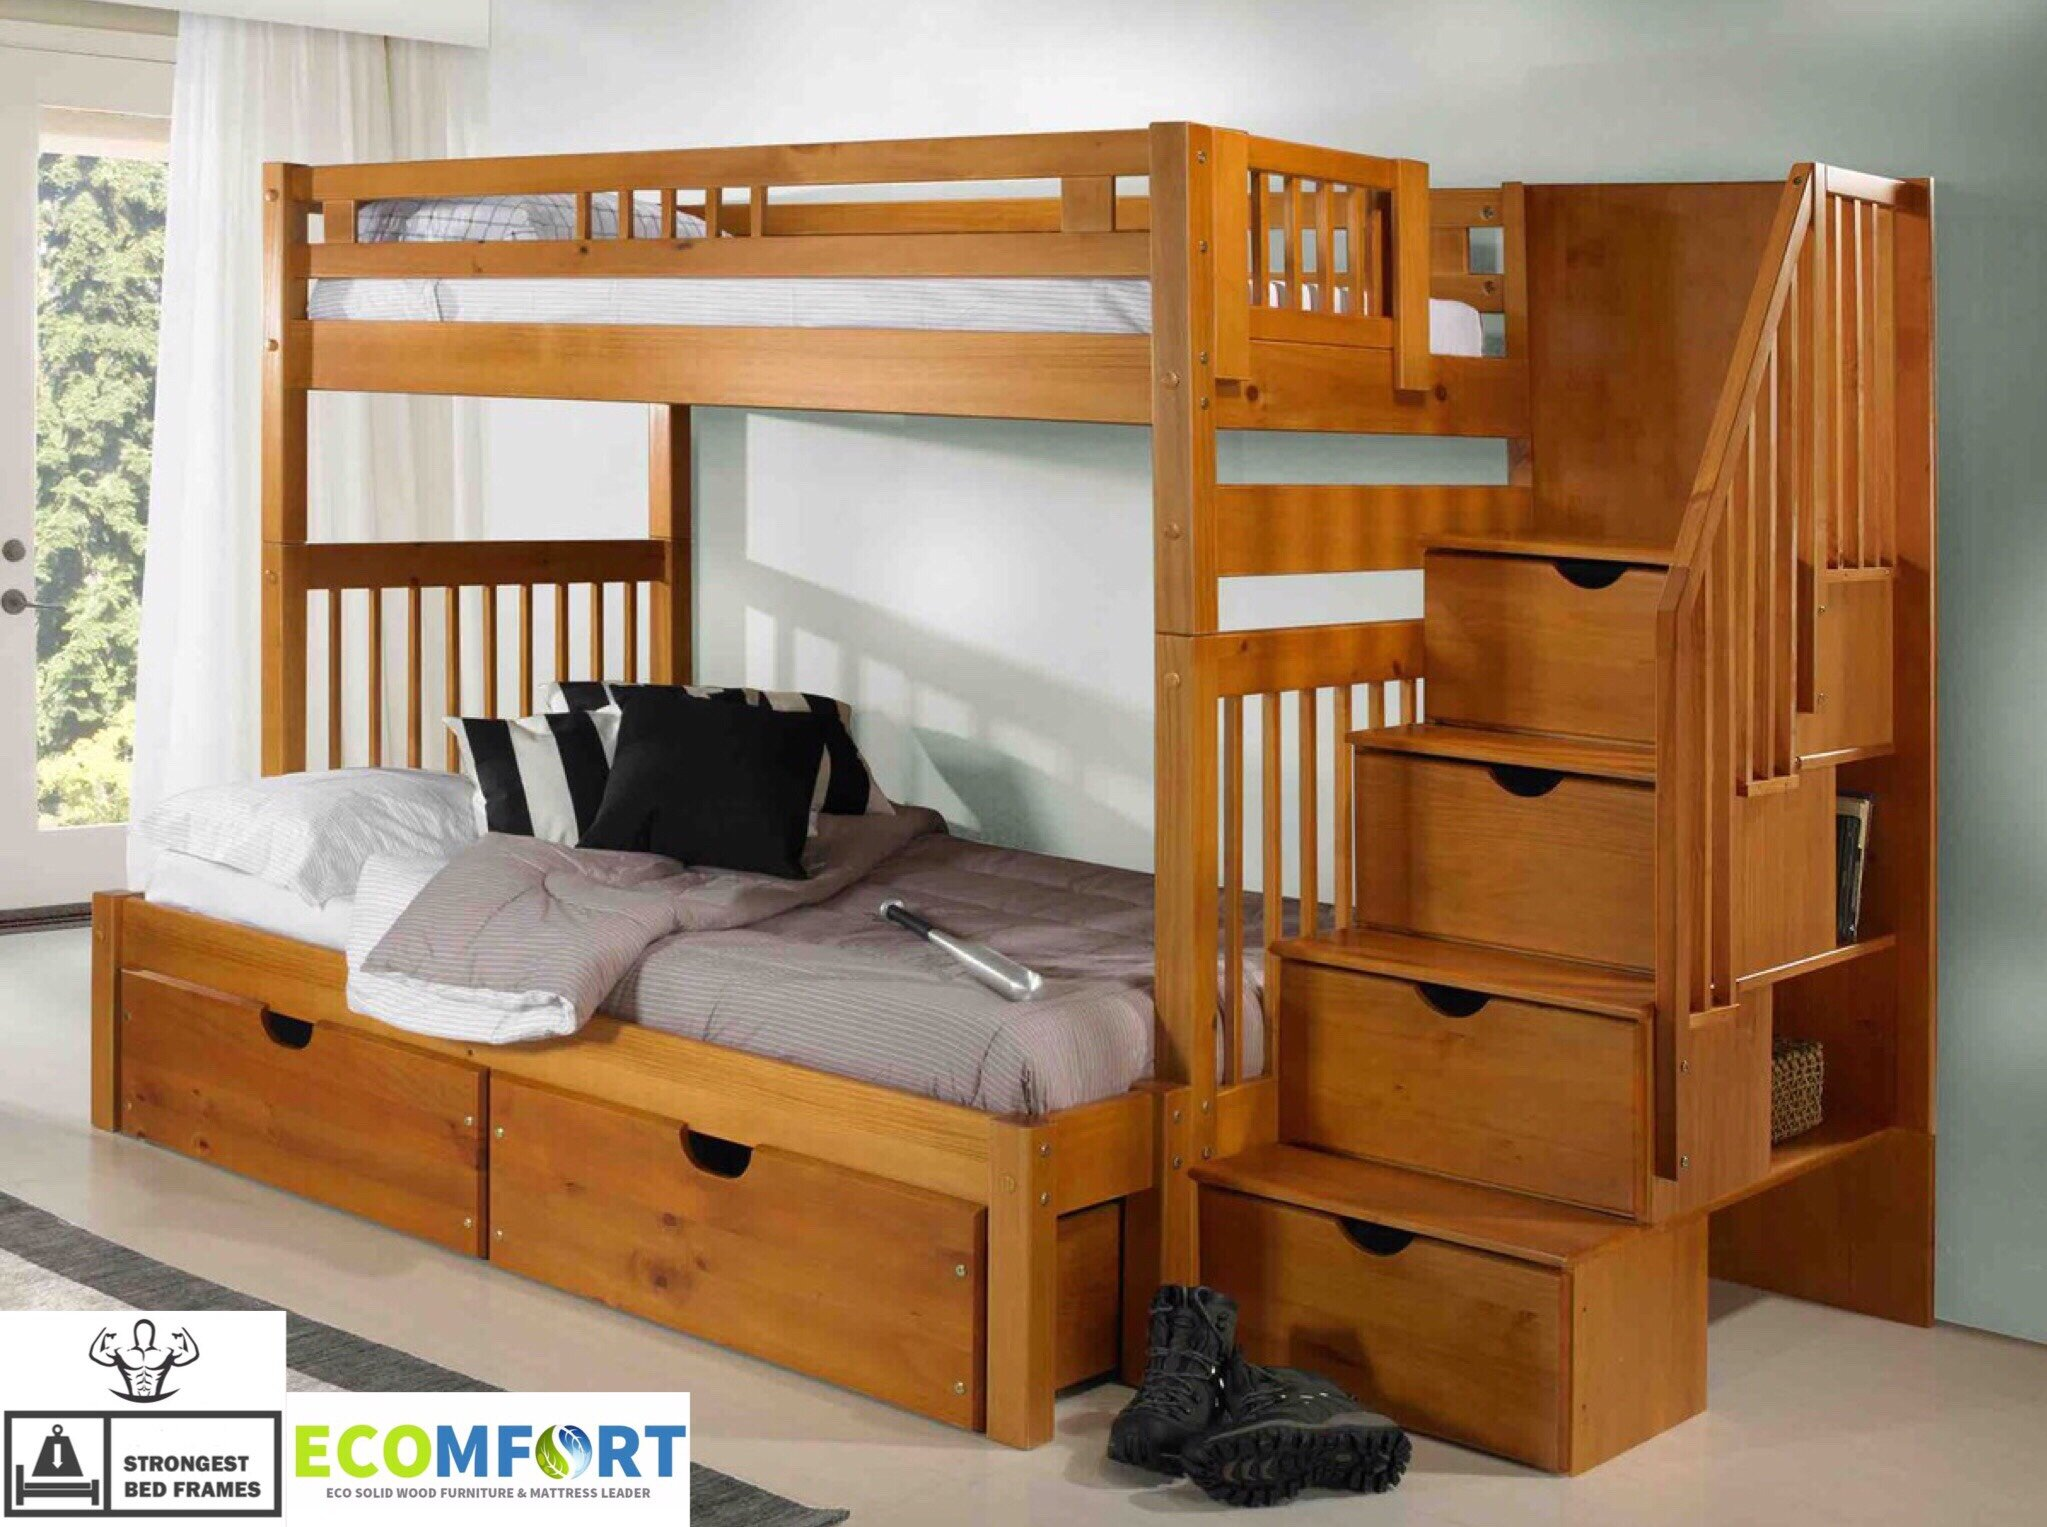 Picture of: Platform Bednew England Solid Wood Bunk Bed With Staircase Pecanbunk Bednew England Solid Wood Bunk Bed With Staircase Pecanmattressnew England Solid Wood Bunk Bed With Staircase Pecanmemory Foamnew England